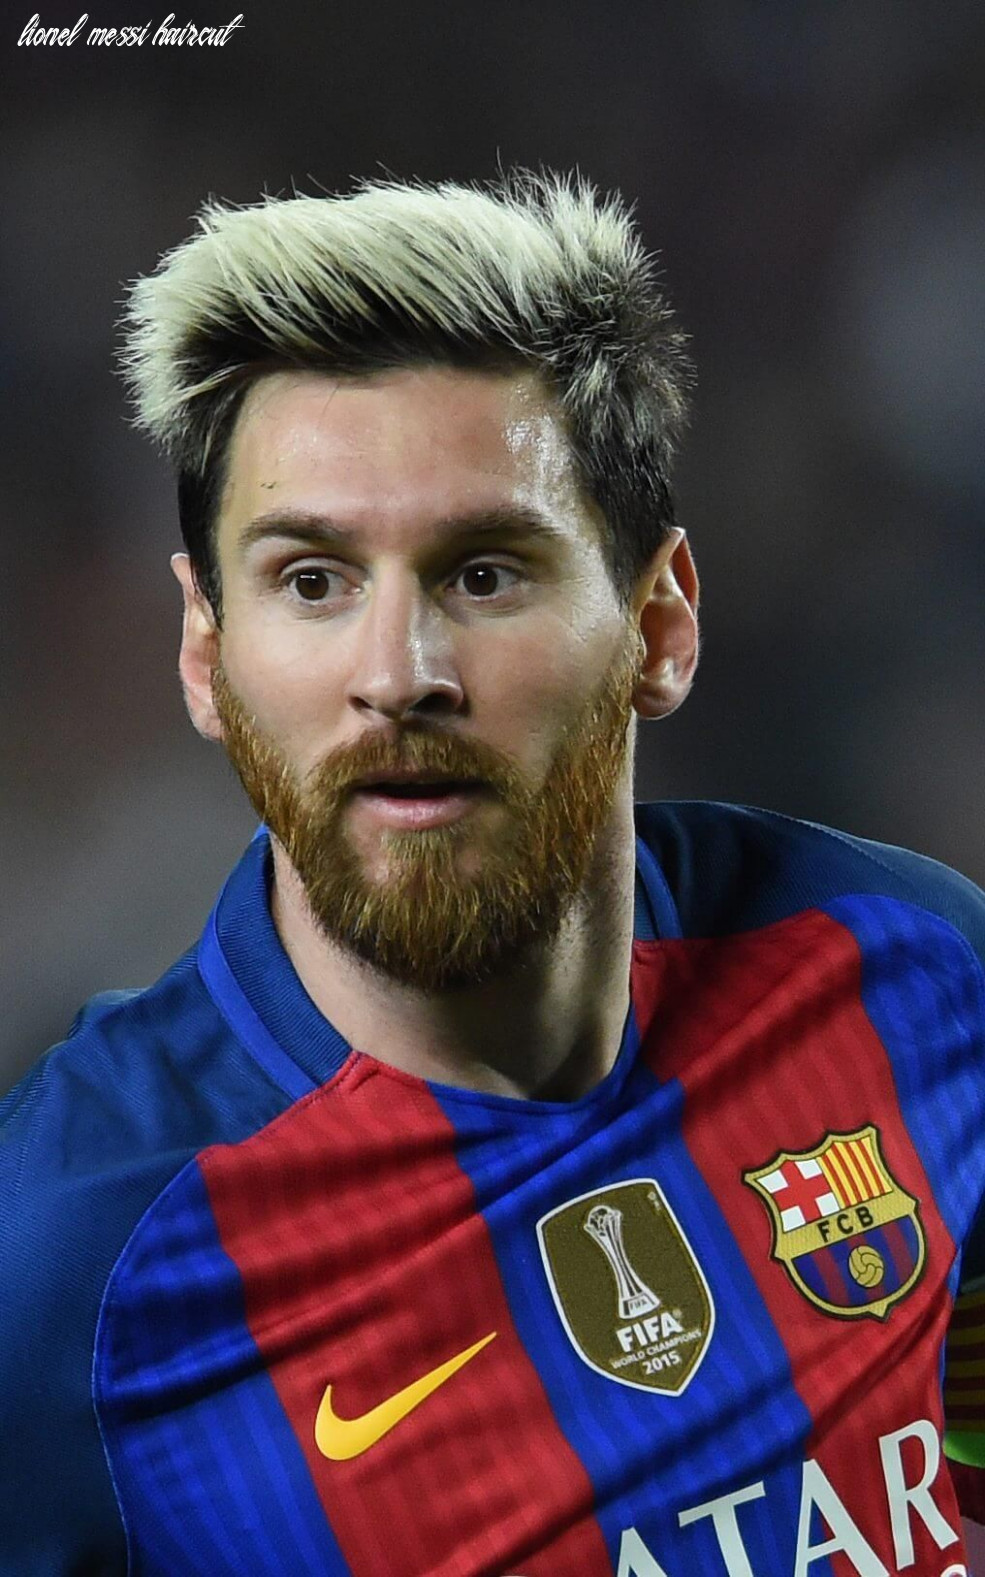 8 inspiring lionel messi hairstyles and haircuts | lionel messi